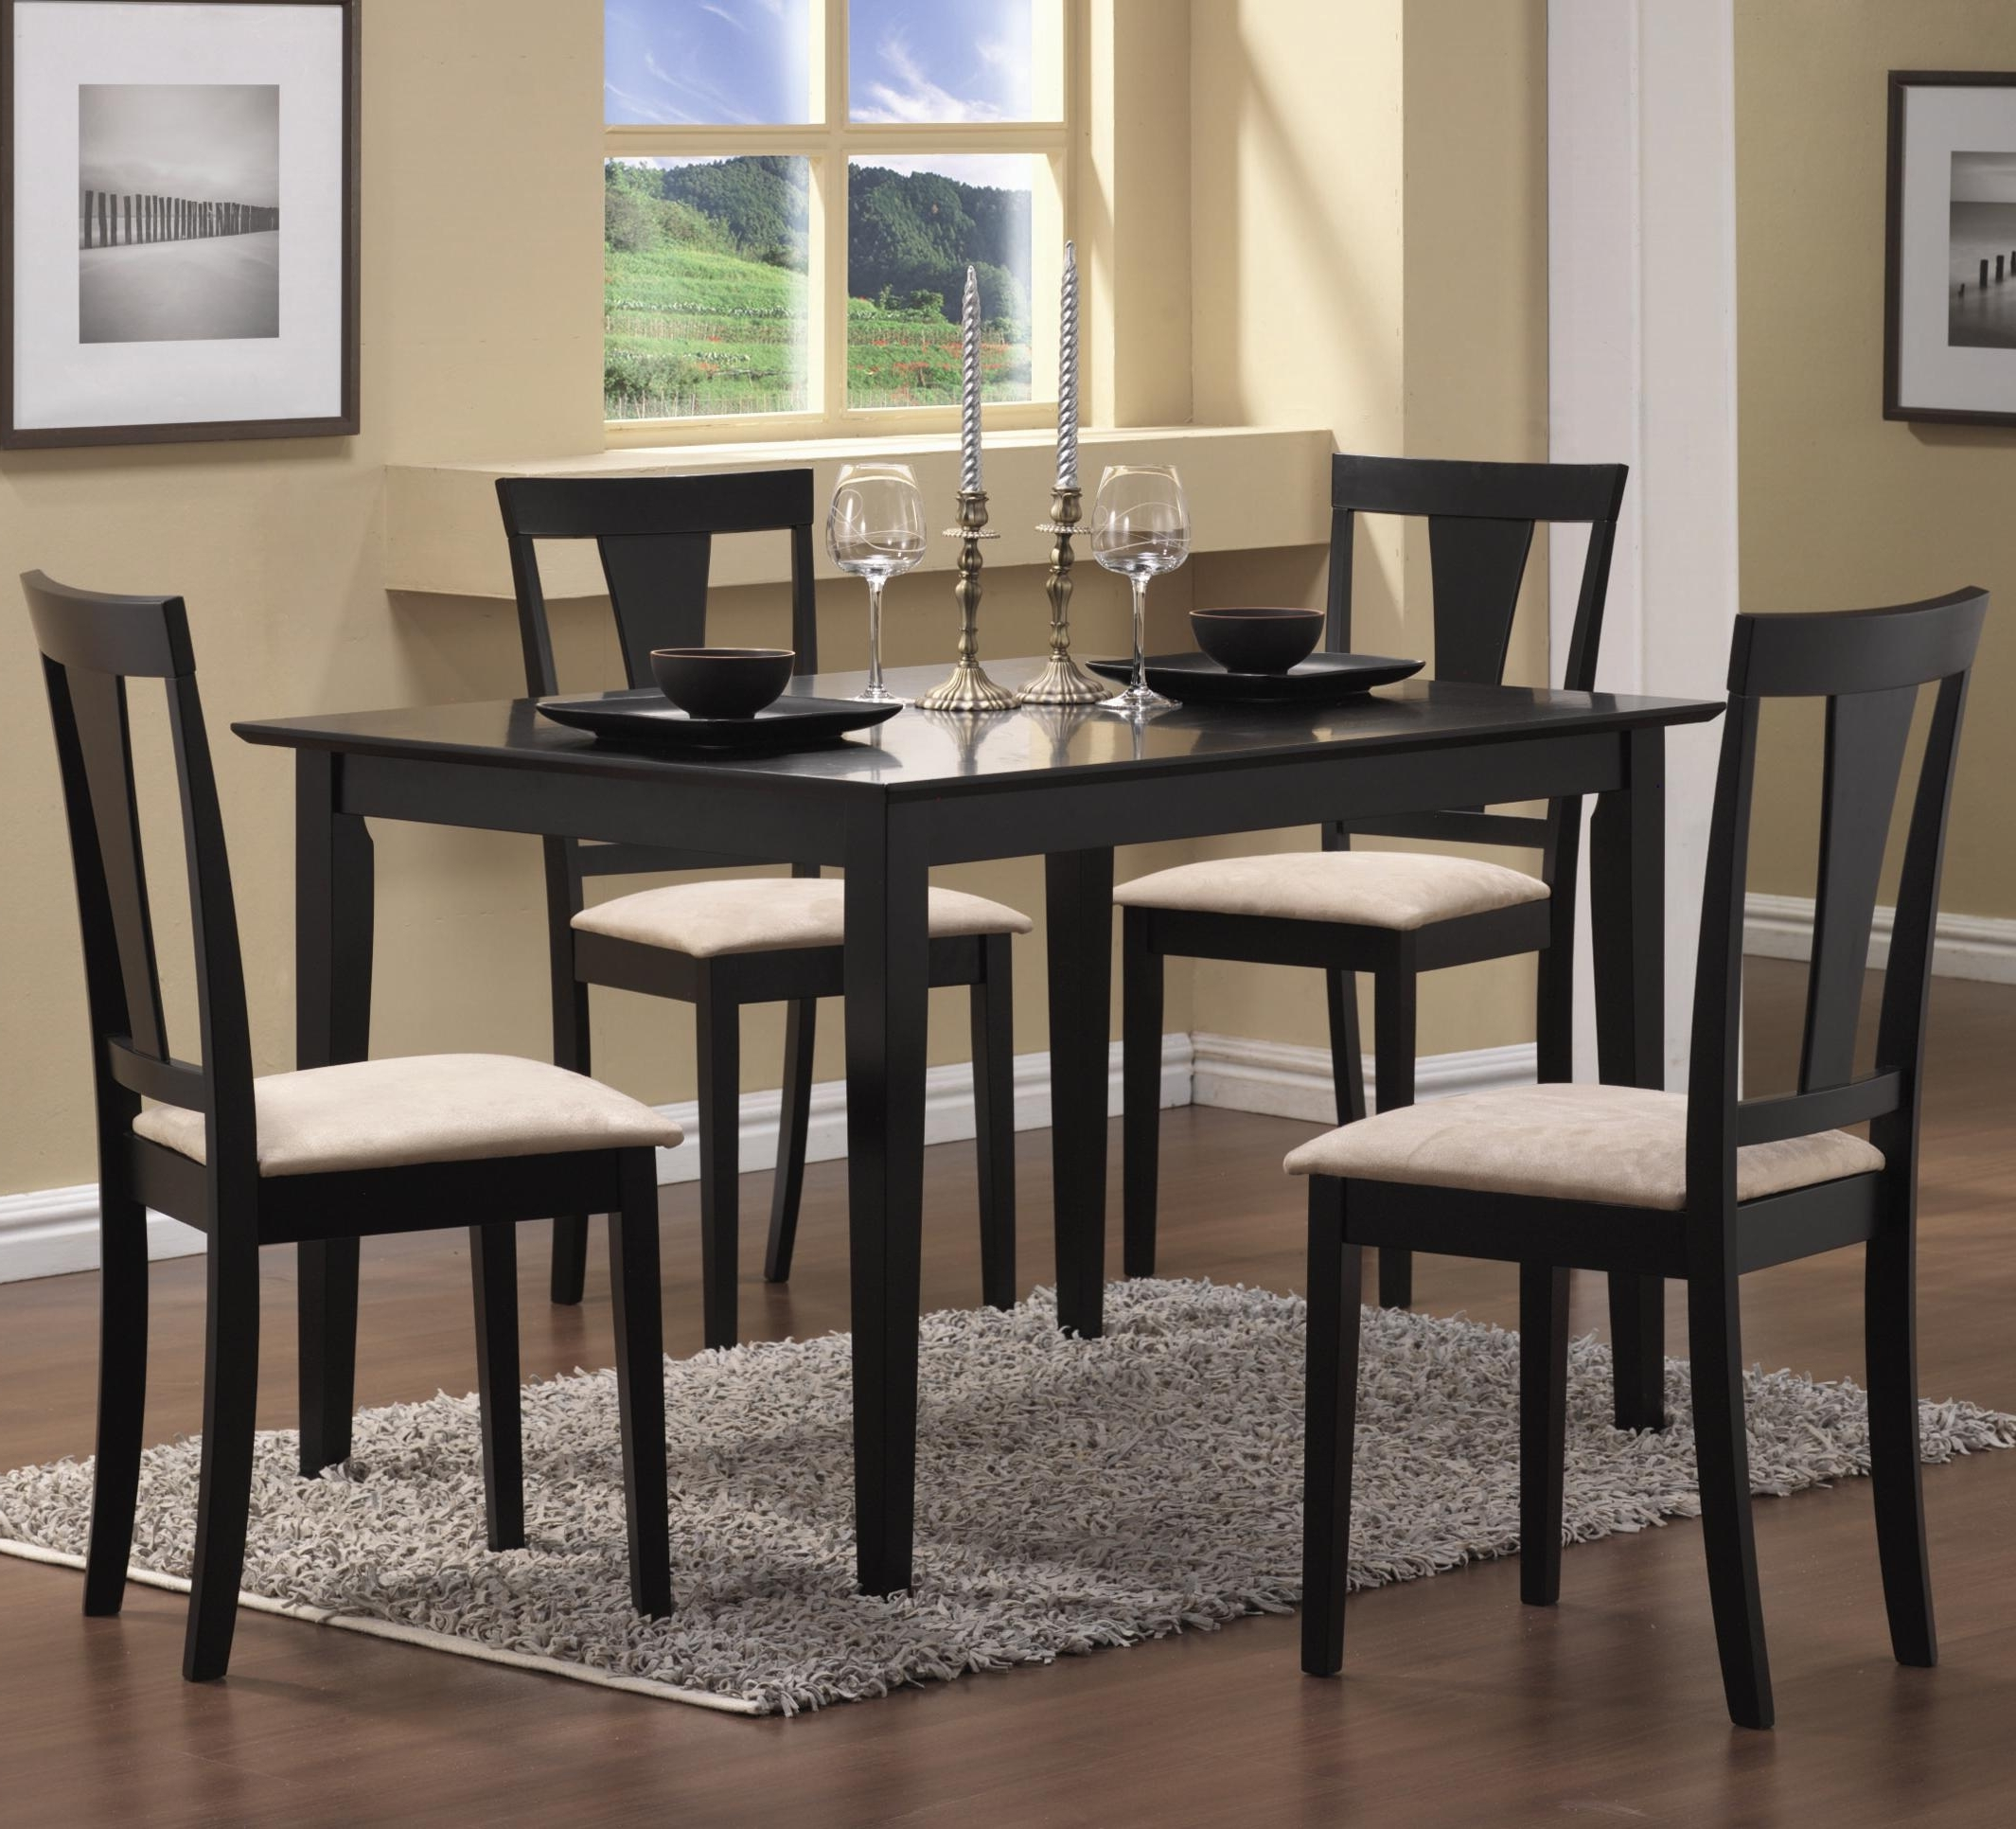 Most Popular Cheap Dining Tables And Chairs In Santa Clara Furniture Store, San Jose Furniture Store, Sunnyvale (View 20 of 25)